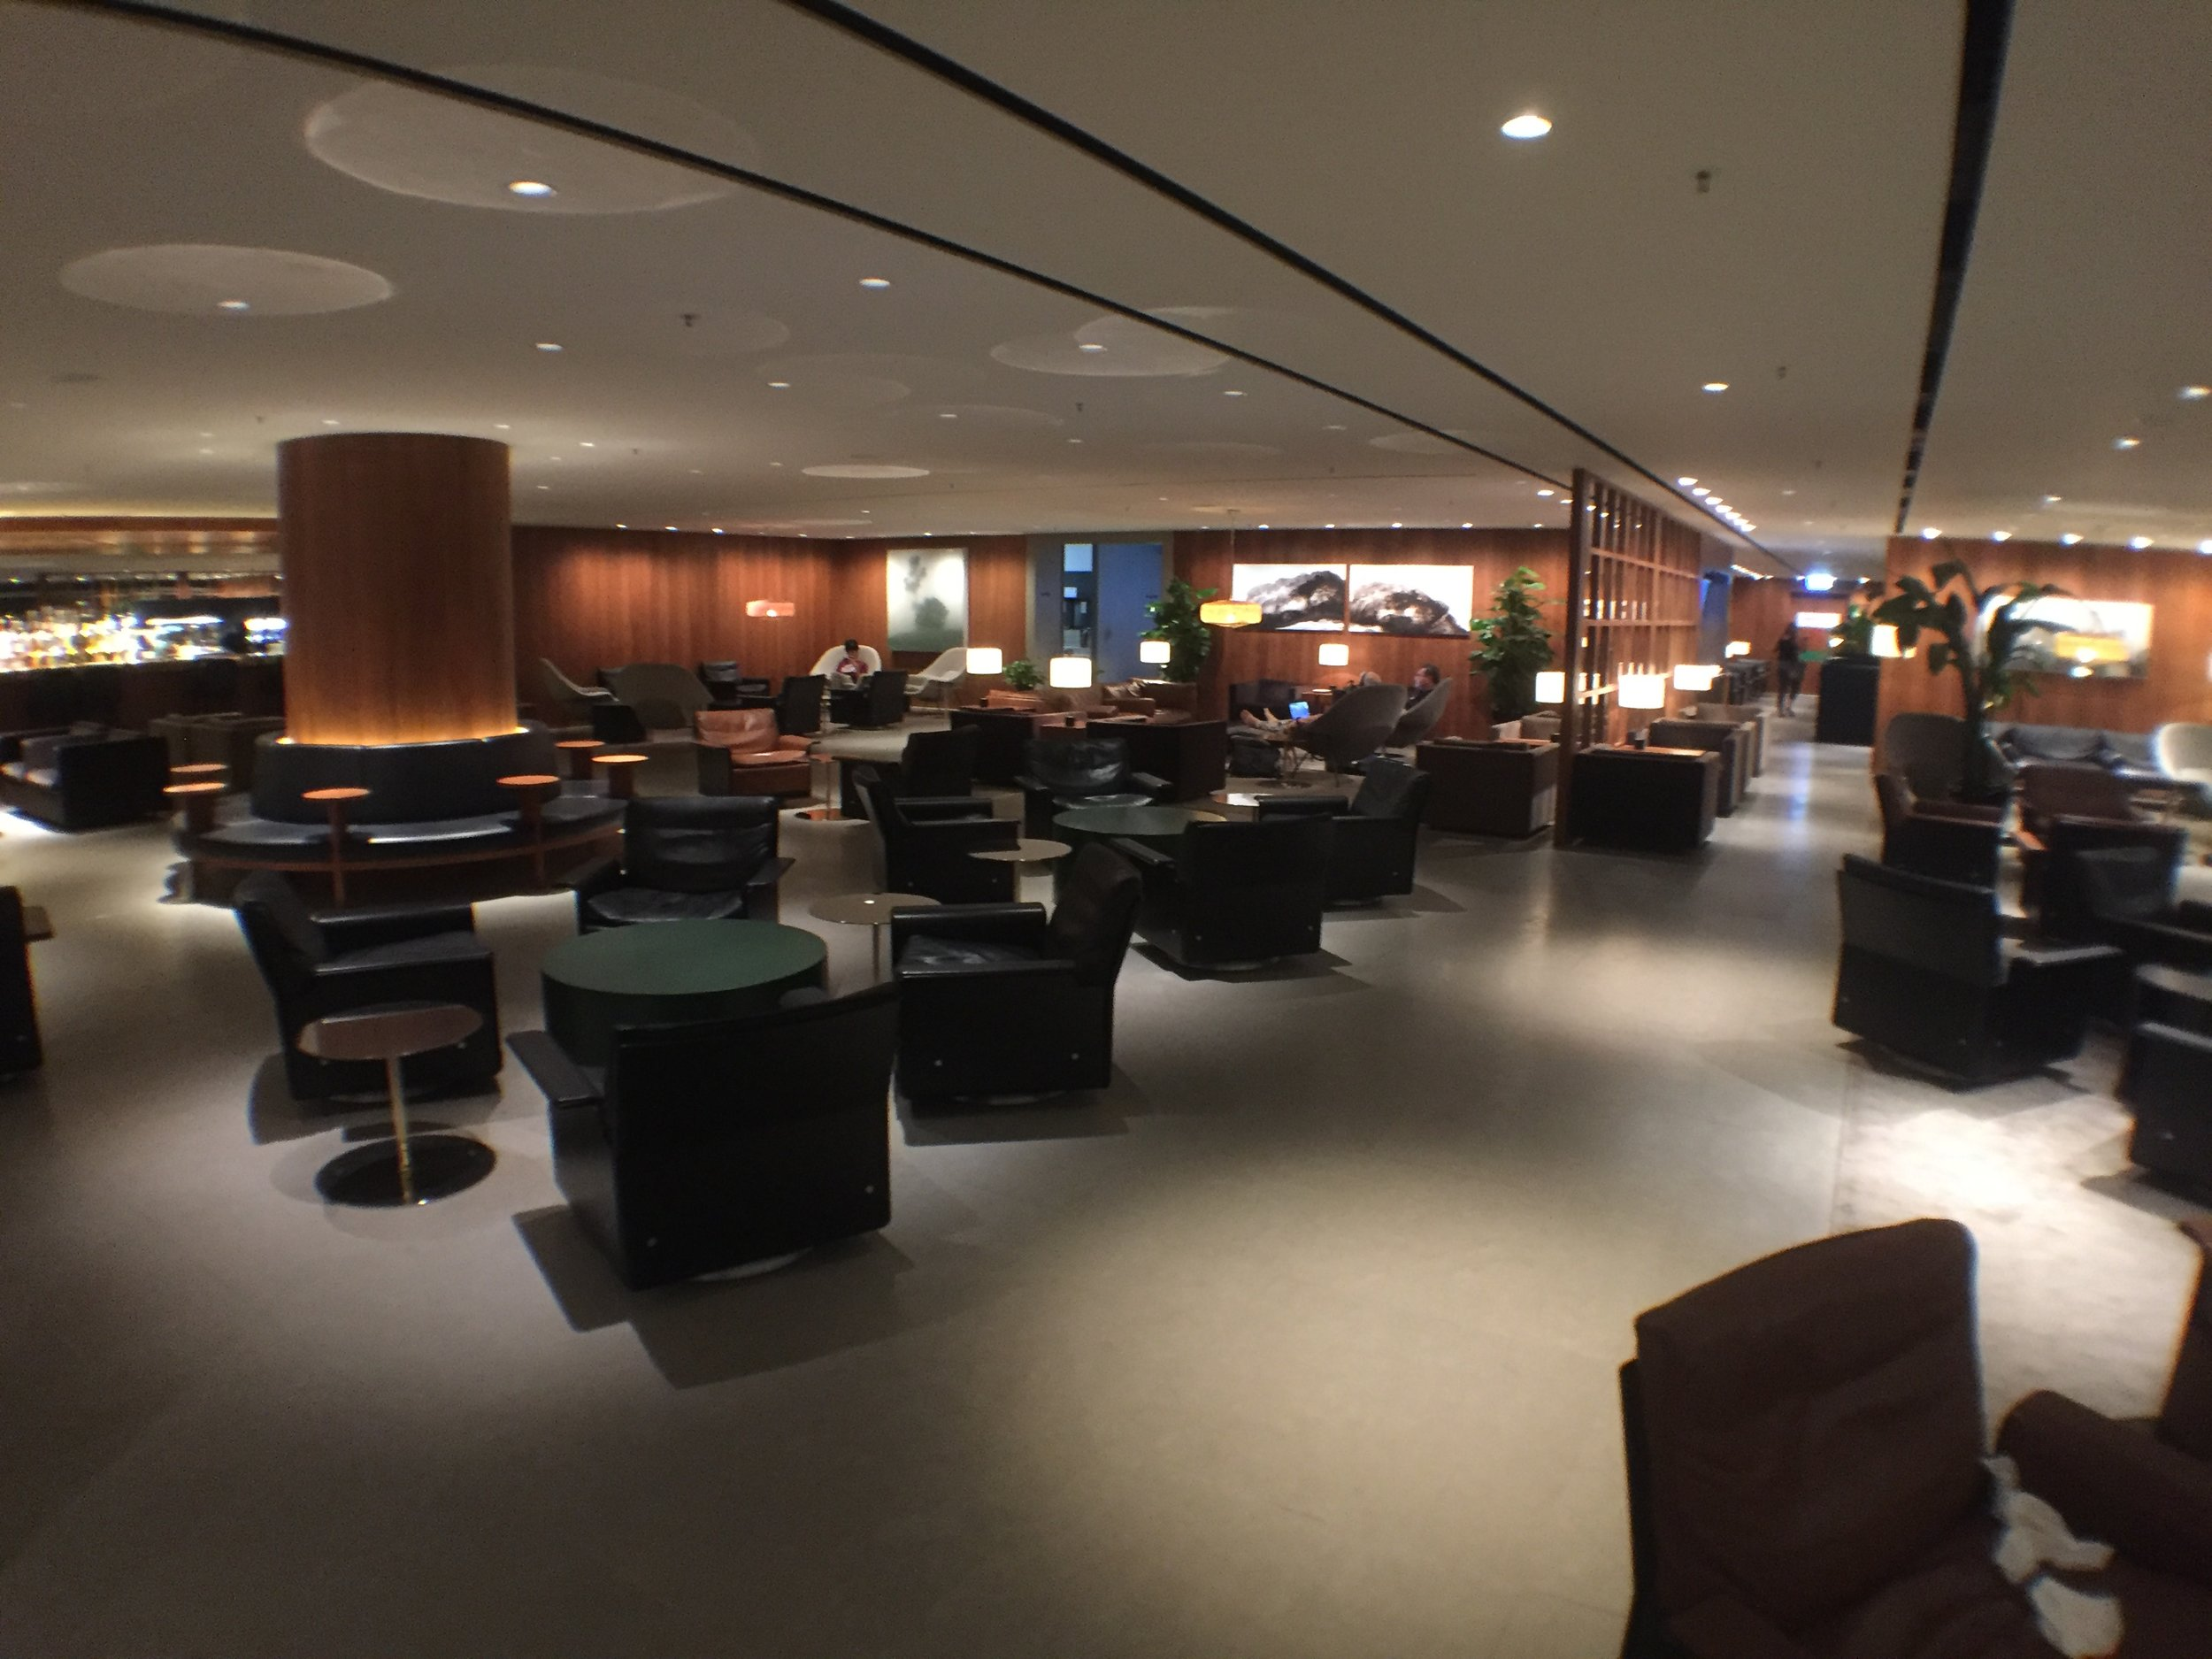 The Pier business class lounge - almost empty at 8pm.